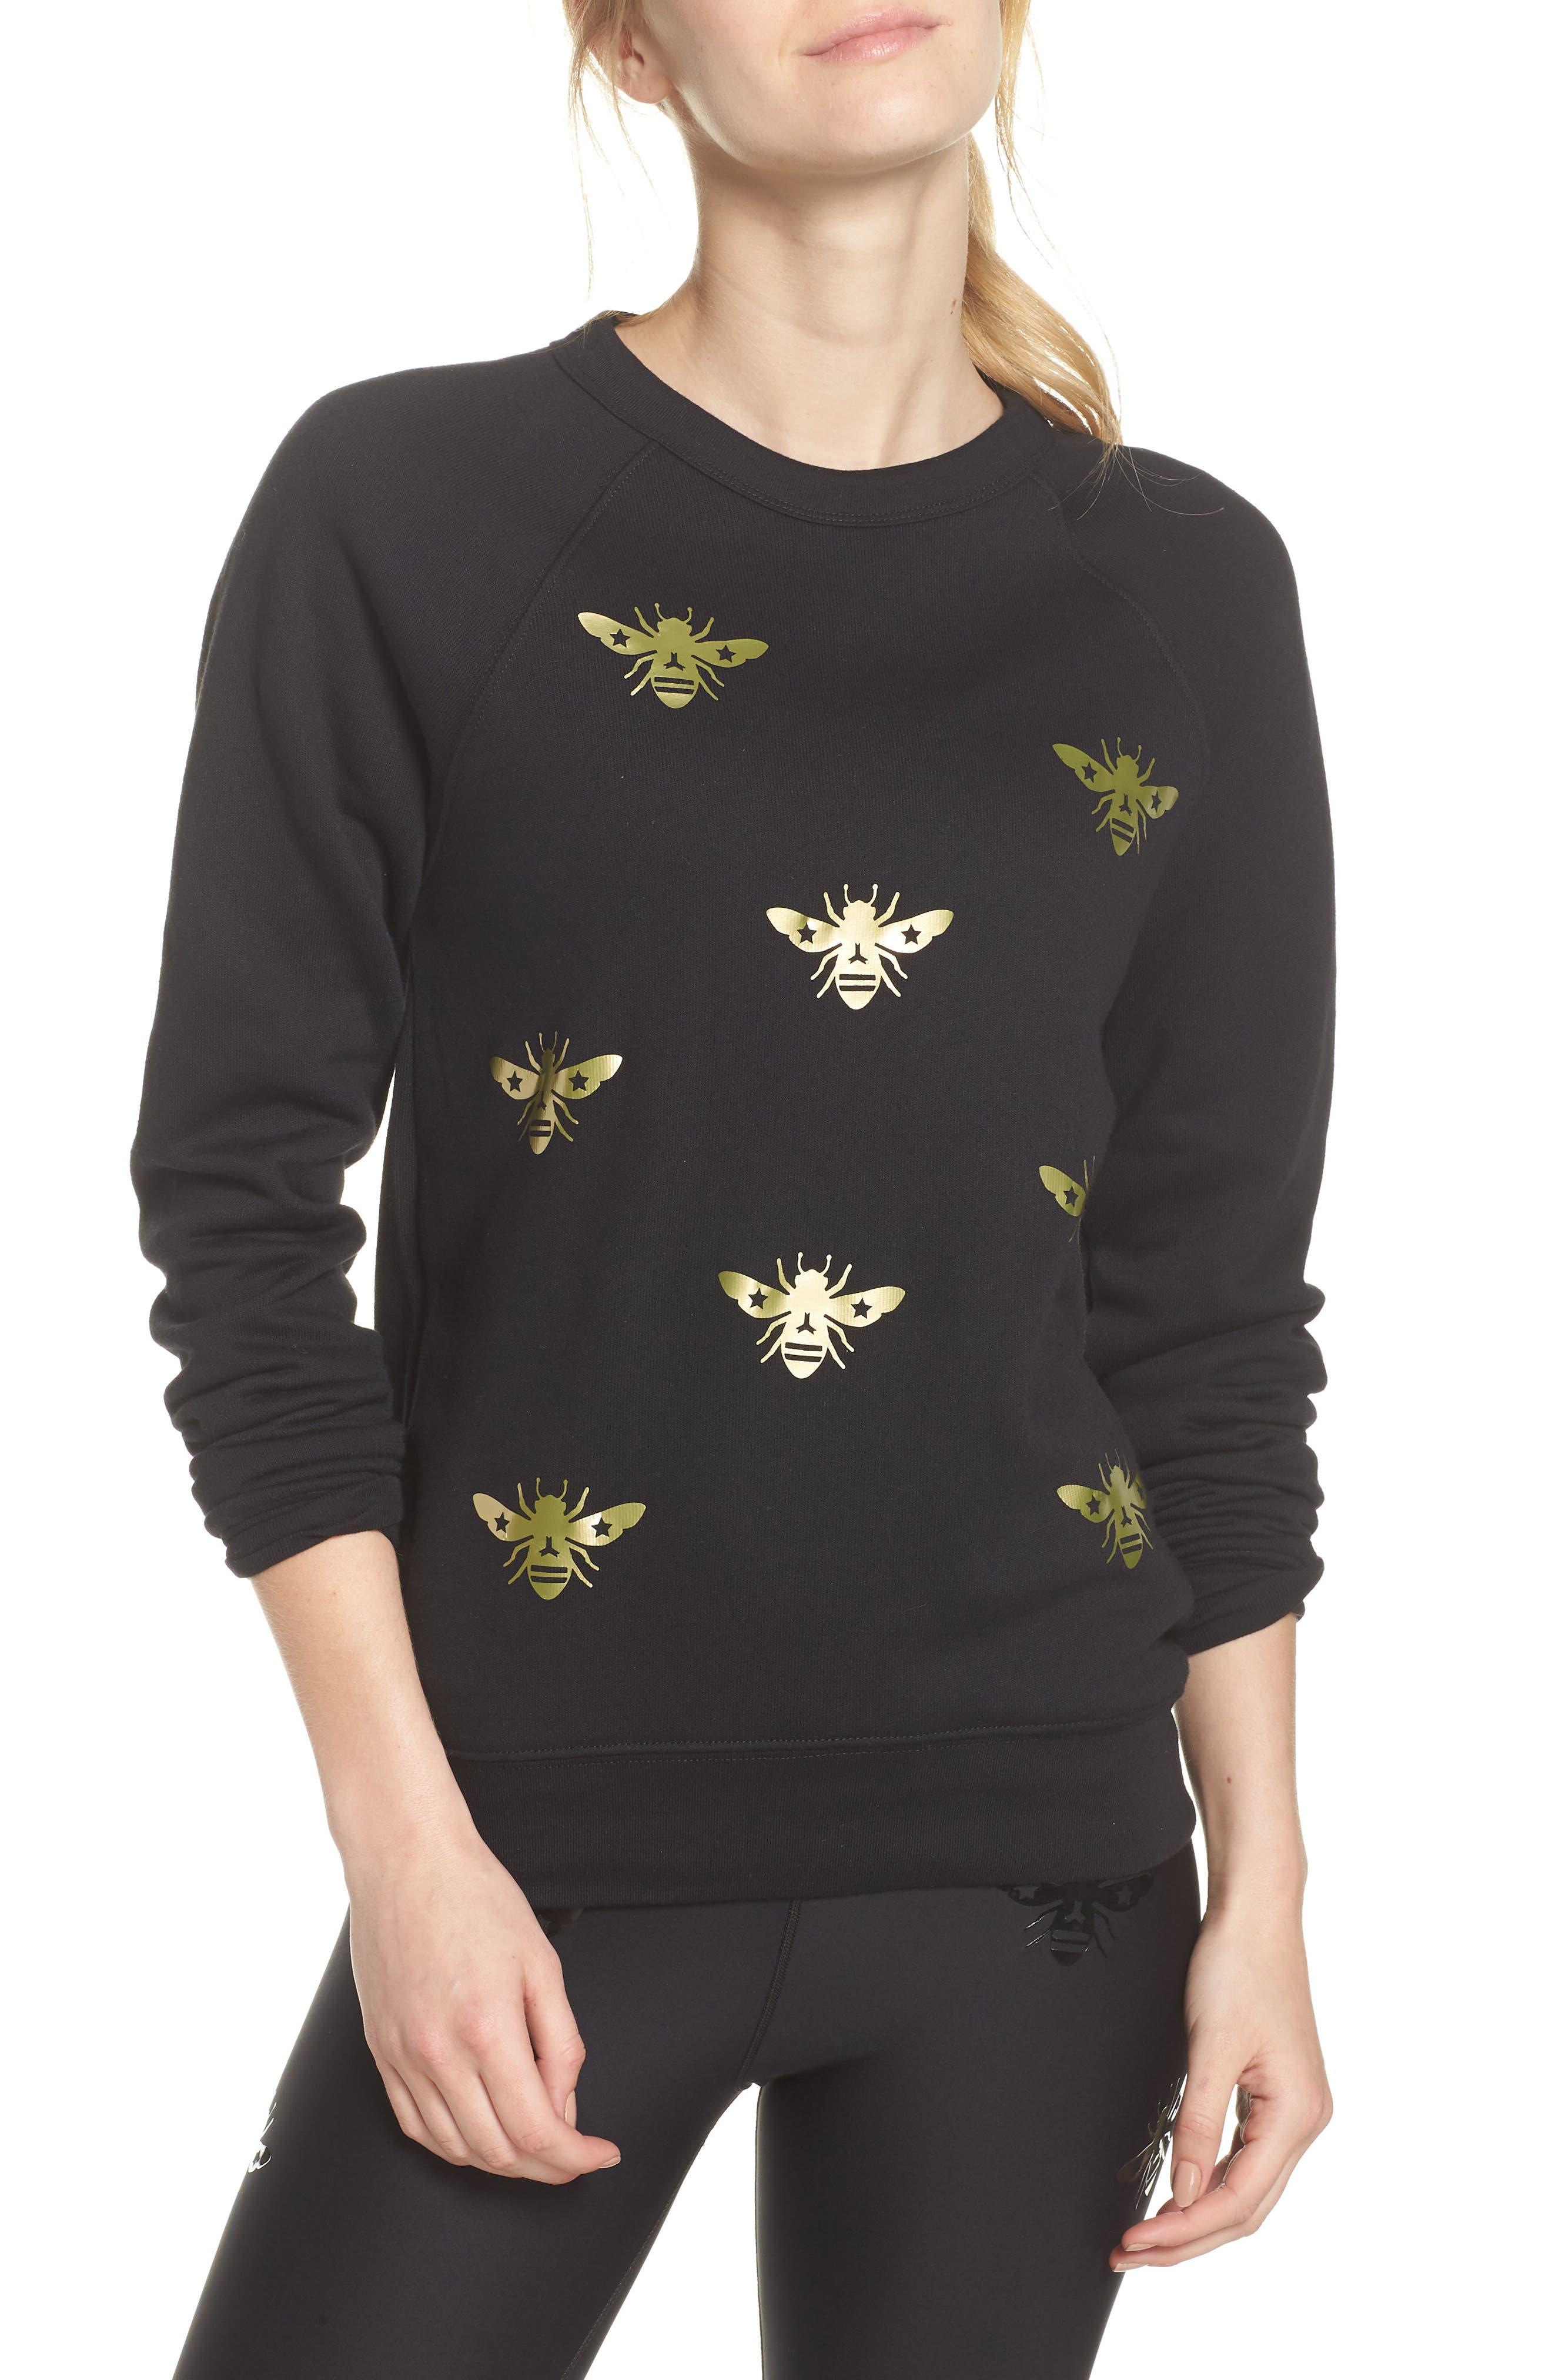 Bee Sweatshirt,                         Main,                         color, Nero/ Gold